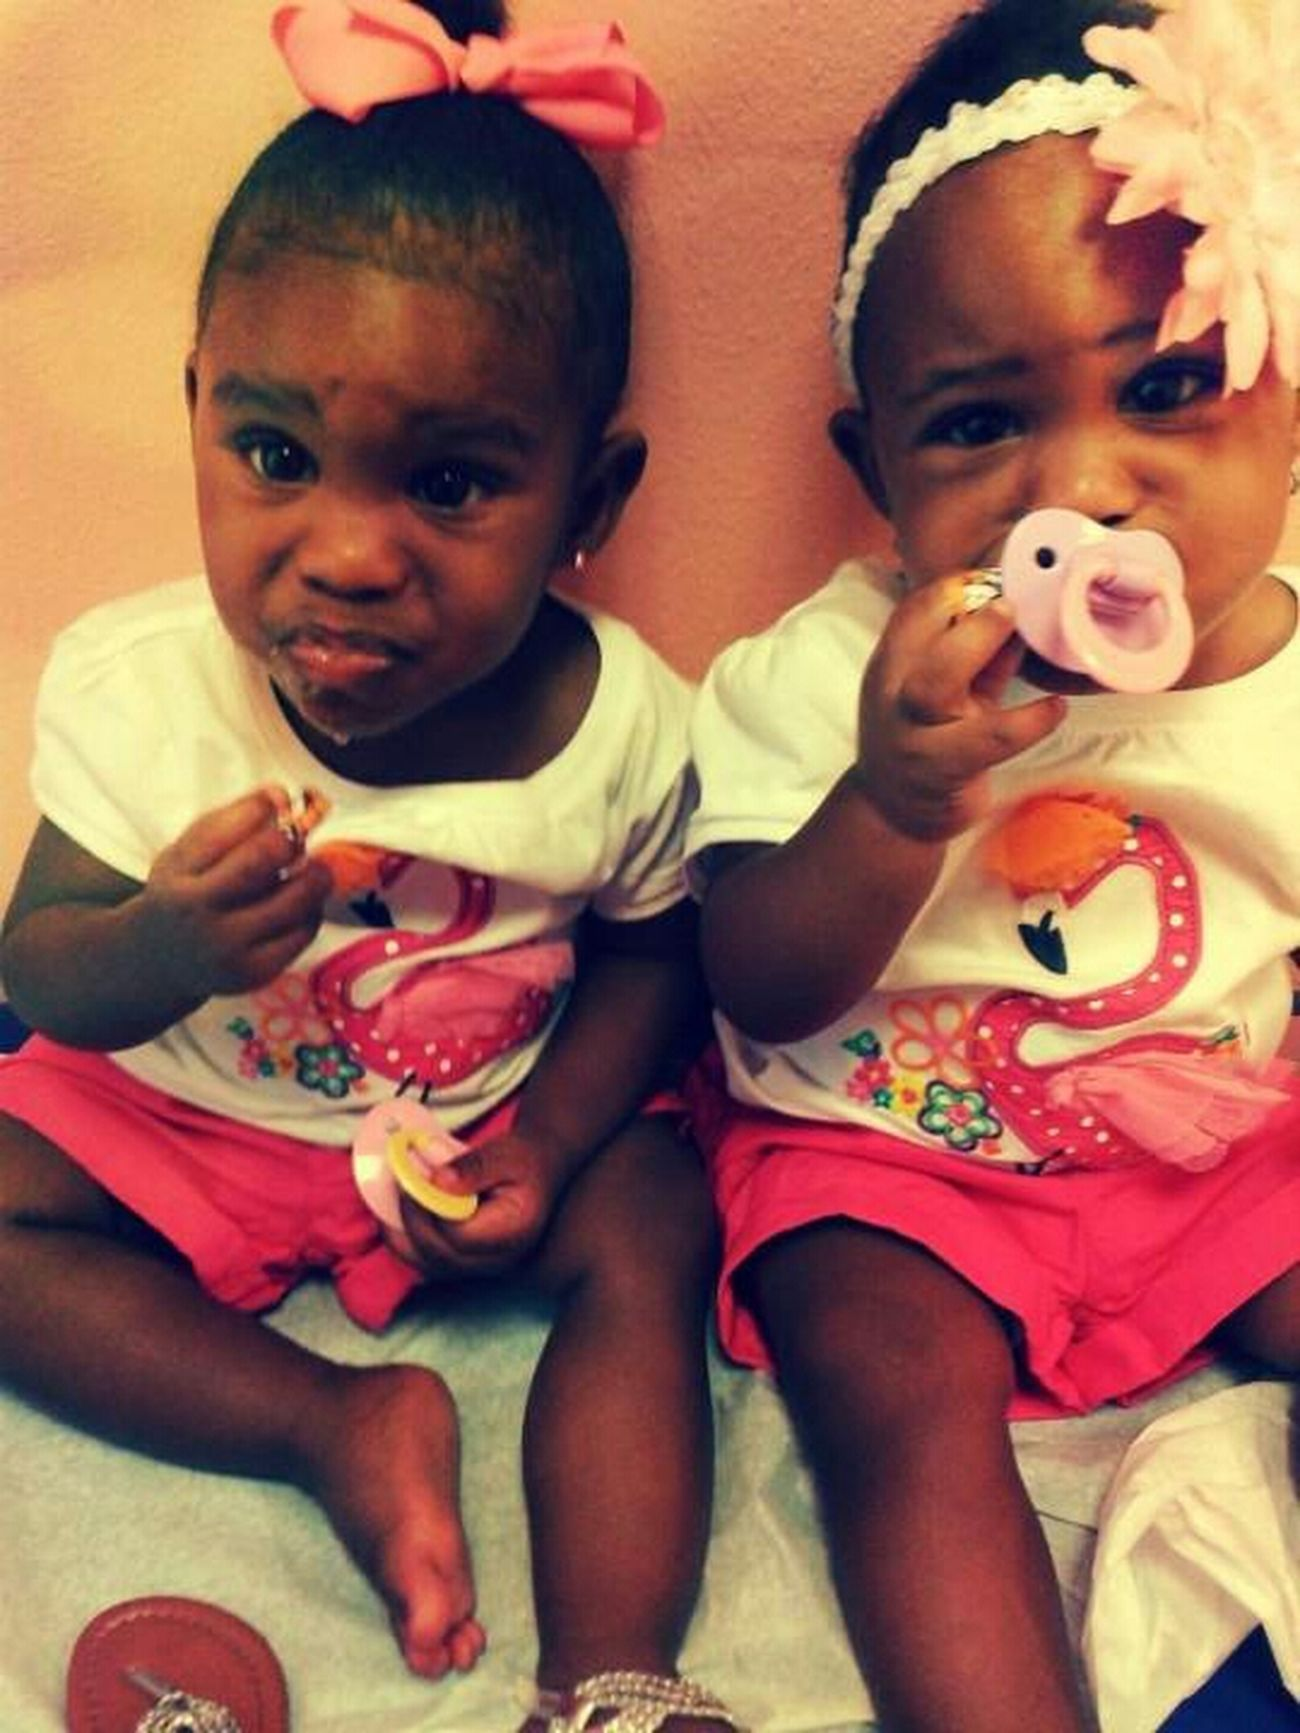 My TWINCESSES.